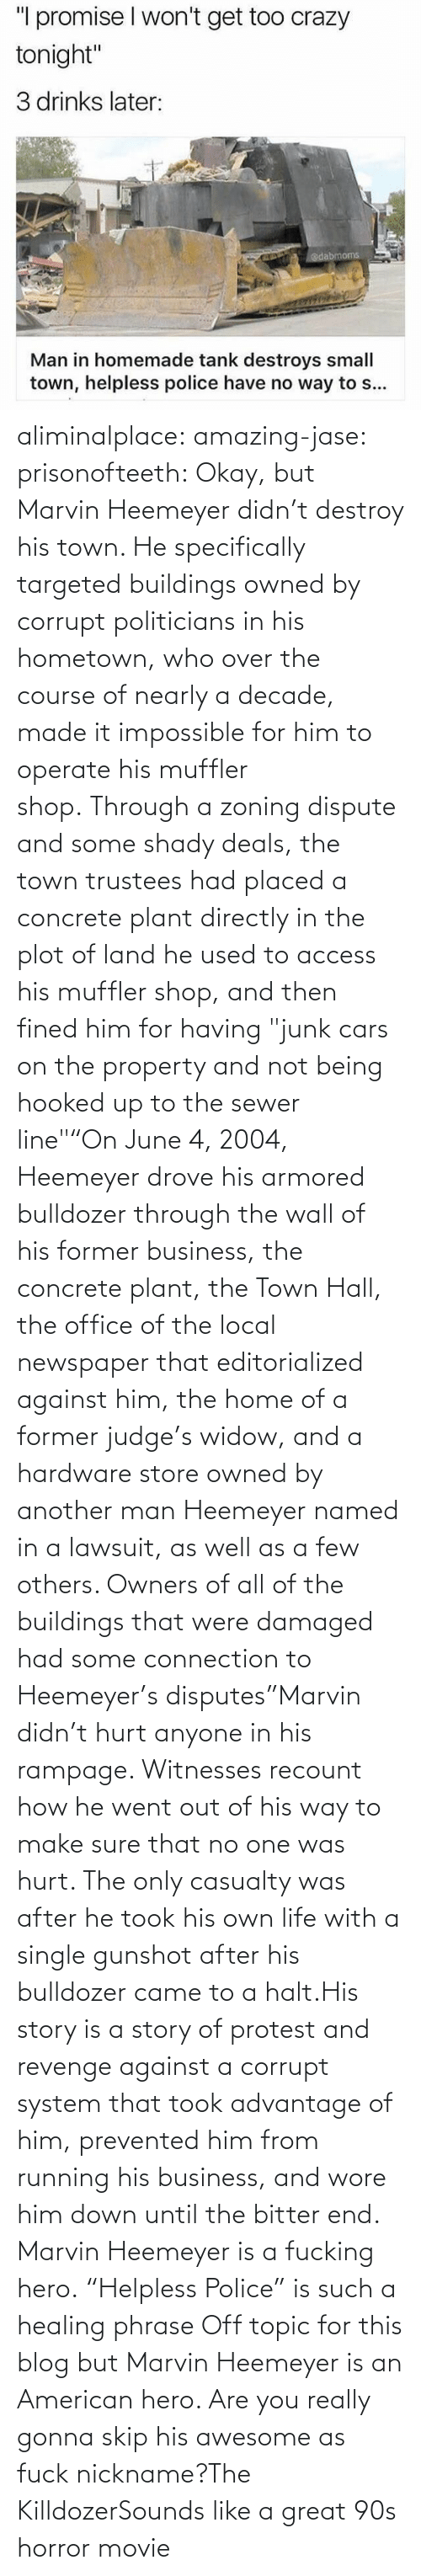 "used: aliminalplace: amazing-jase:  prisonofteeth: Okay, but Marvin Heemeyer didn't destroy his town. He specifically targeted buildings owned by corrupt politicians in his hometown, who over the course of nearly a decade, made it impossible for him to operate his muffler shop. Through a zoning dispute and some shady deals, the town trustees had placed a concrete plant directly in the plot of land he used to access his muffler shop, and then fined him for having ""junk cars on the property and not being hooked up to the sewer line""""On June 4, 2004, Heemeyer drove his armored bulldozer through the wall of his former business, the concrete plant, the Town Hall, the office of the local newspaper that editorialized against him, the home of a former judge's widow, and a hardware store owned by another man Heemeyer named in a lawsuit, as well as a few others. Owners of all of the buildings that were damaged had some connection to Heemeyer's disputes""Marvin didn't hurt anyone in his rampage. Witnesses recount how he went out of his way to make sure that no one was hurt. The only casualty was after he took his own life with a single gunshot after his bulldozer came to a halt.His story is a story of protest and revenge against a corrupt system that took advantage of him, prevented him from running his business, and wore him down until the bitter end. Marvin Heemeyer is a fucking hero. ""Helpless Police"" is such a healing phrase    Off topic for this blog but Marvin Heemeyer is an American hero.     Are you really gonna skip his awesome as fuck nickname?The KilldozerSounds like a great 90s horror movie"